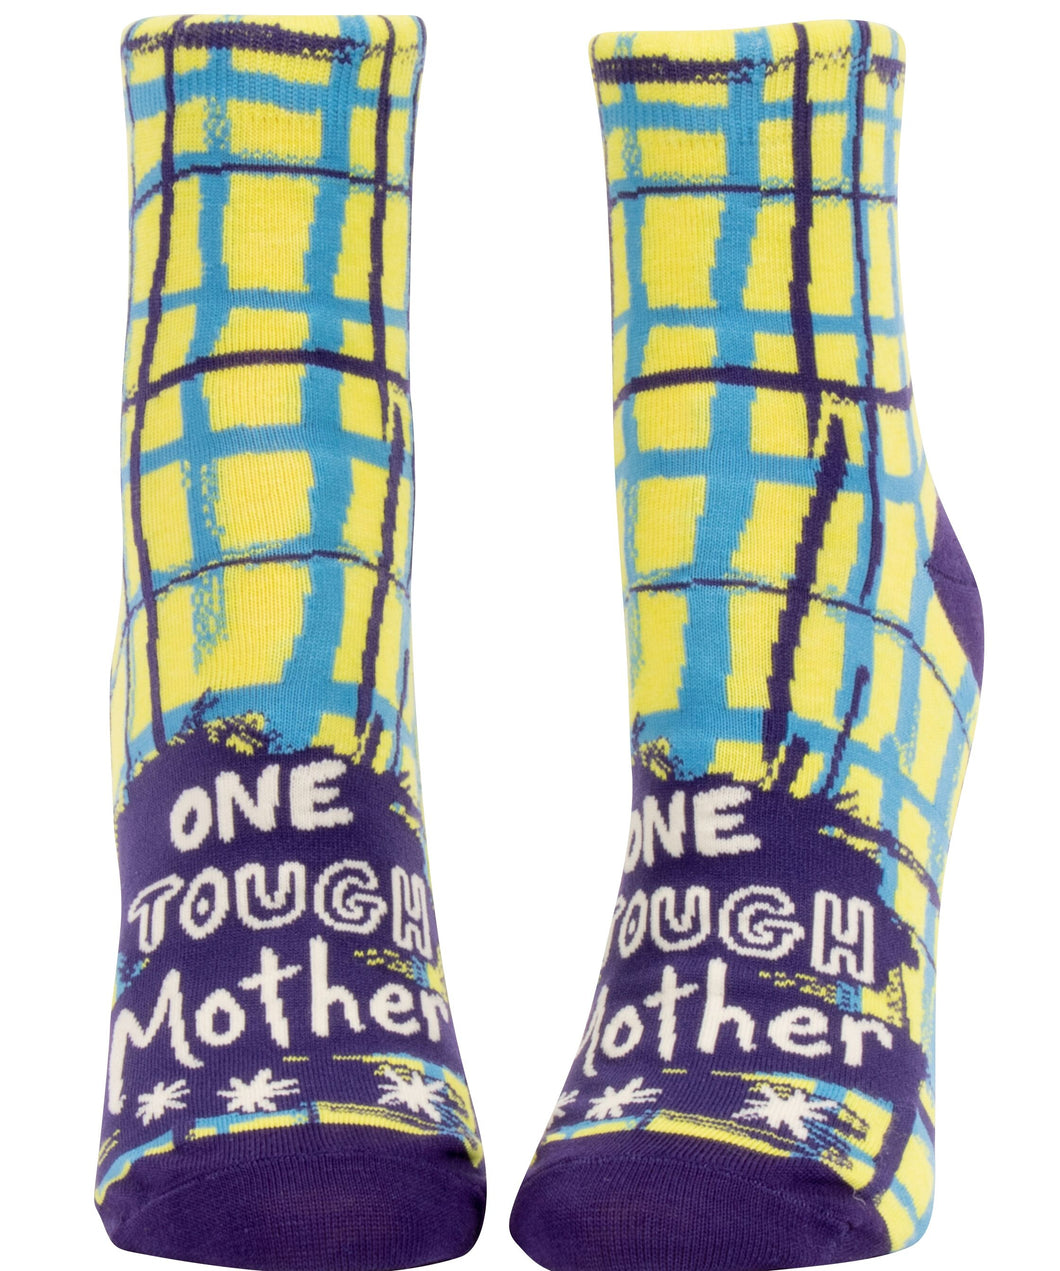 One Tough Mother Ankle Socks